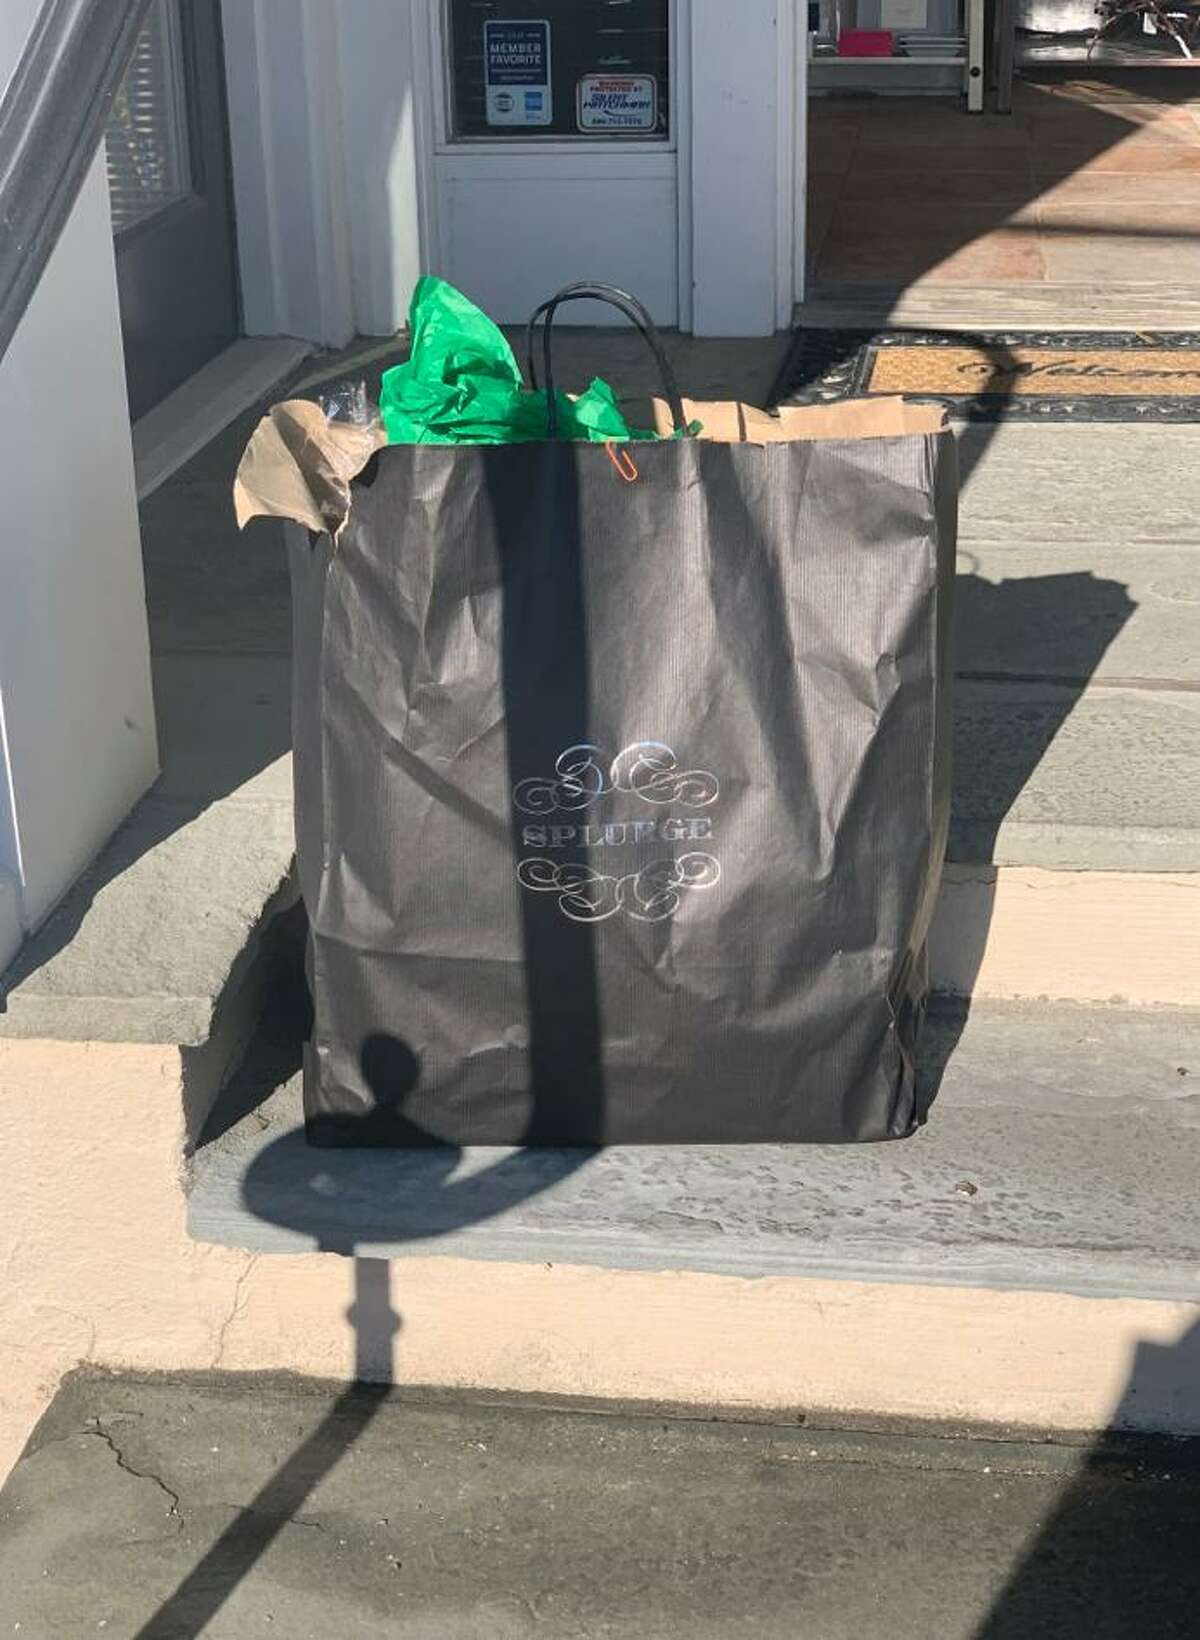 Darien resident Joe Calve unexpectedly found this long-lost bag of gifts when he visited gift store Splurge on Dec. 25, 2019, at 39 Lewis St., in Greenwich, Conn.